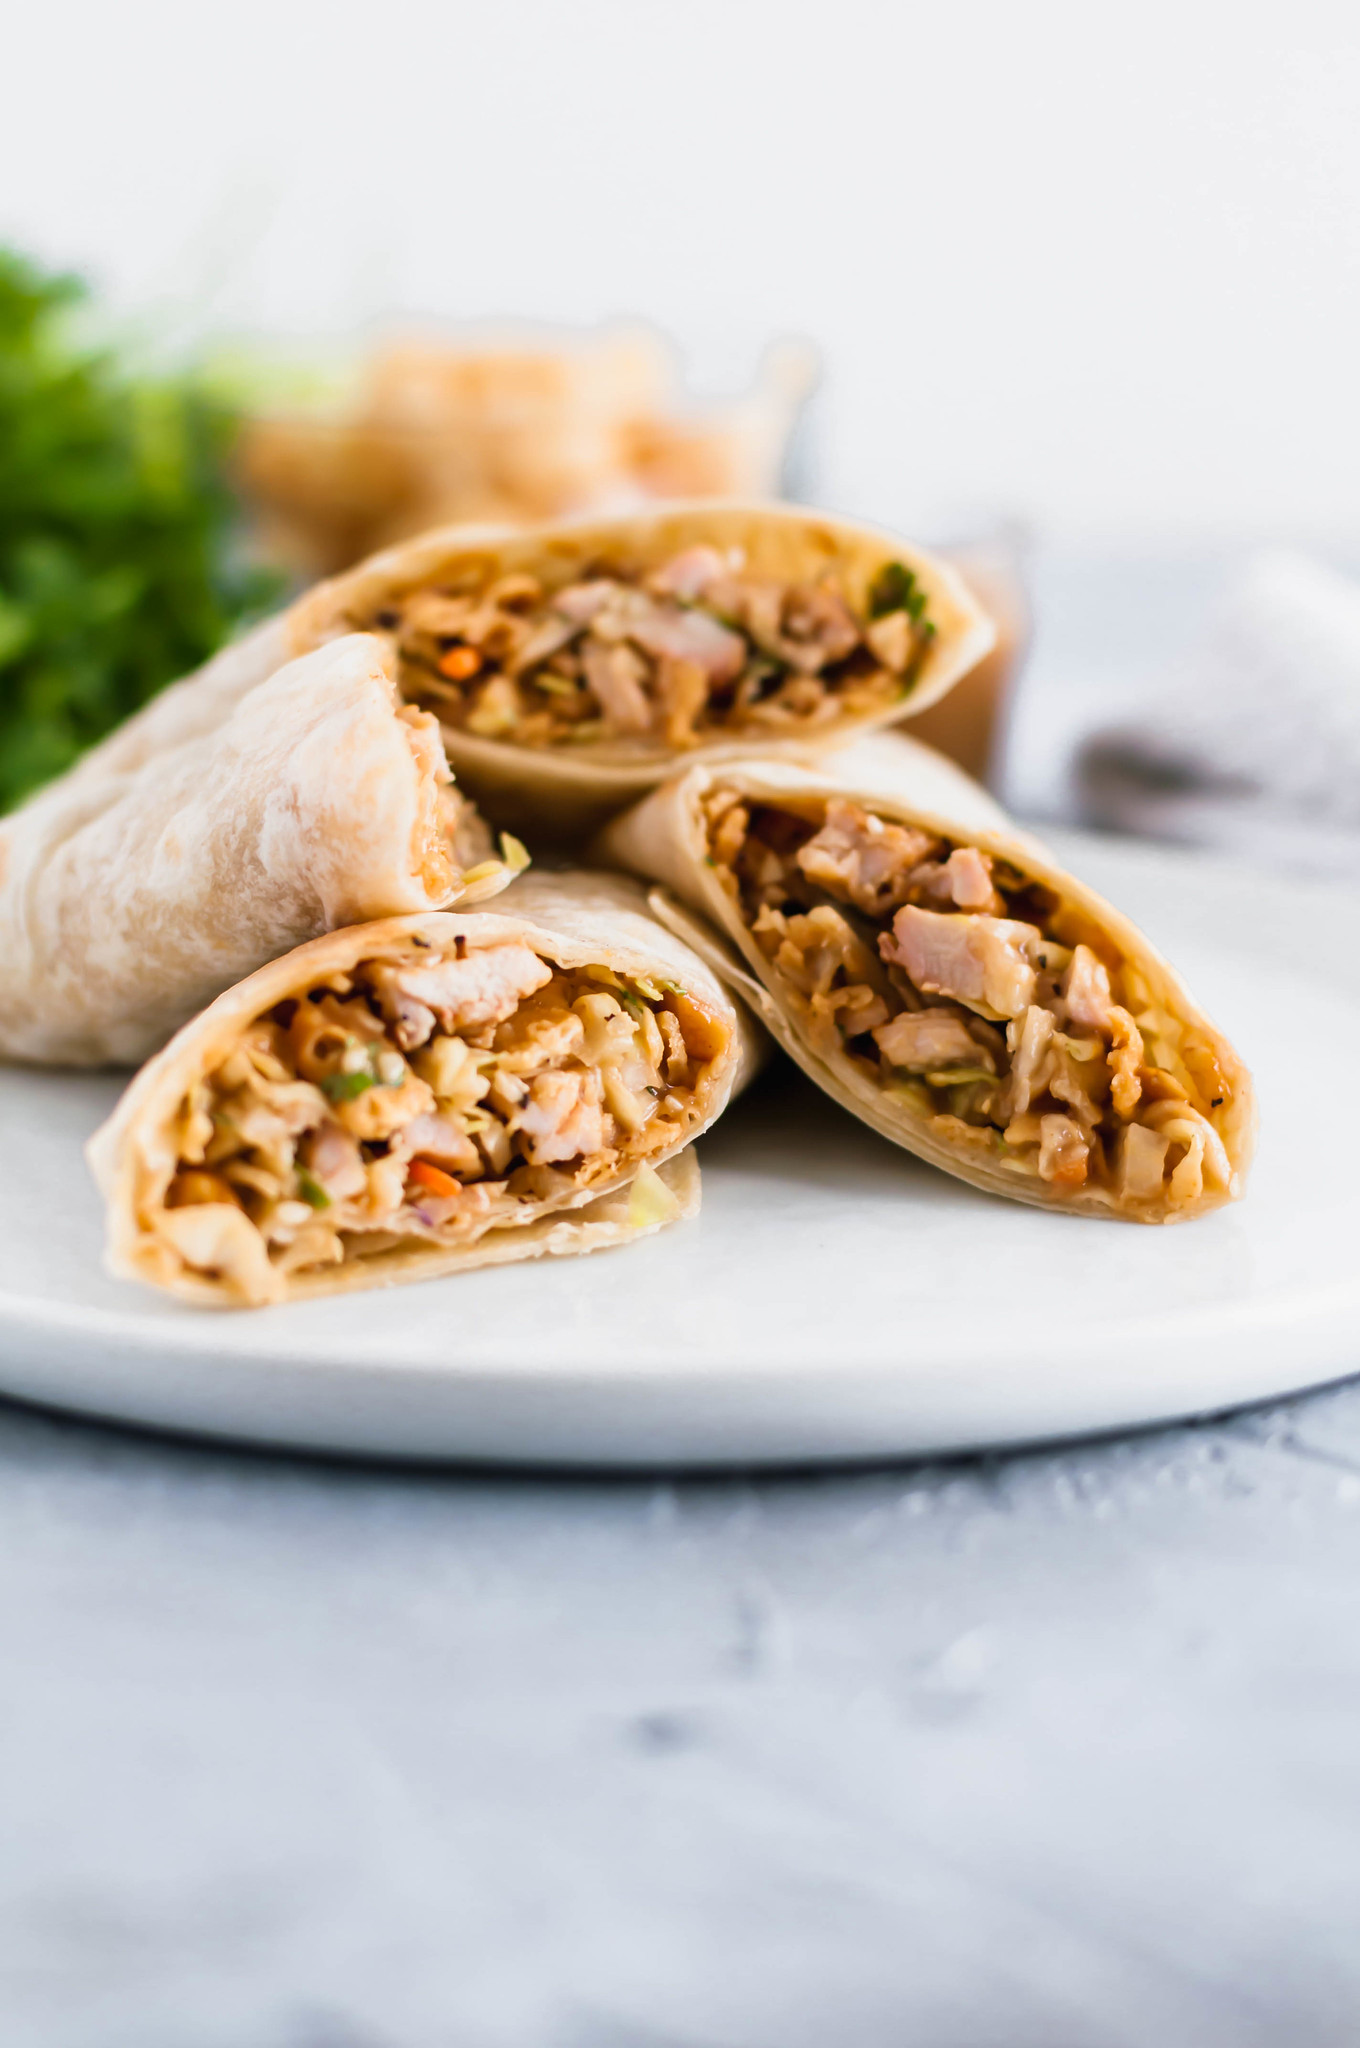 These Thai Chicken Wraps are sure to become a new summer favorite. Light, simple to make and totally addictive. Homemade peanut sauce adds so much flavor.